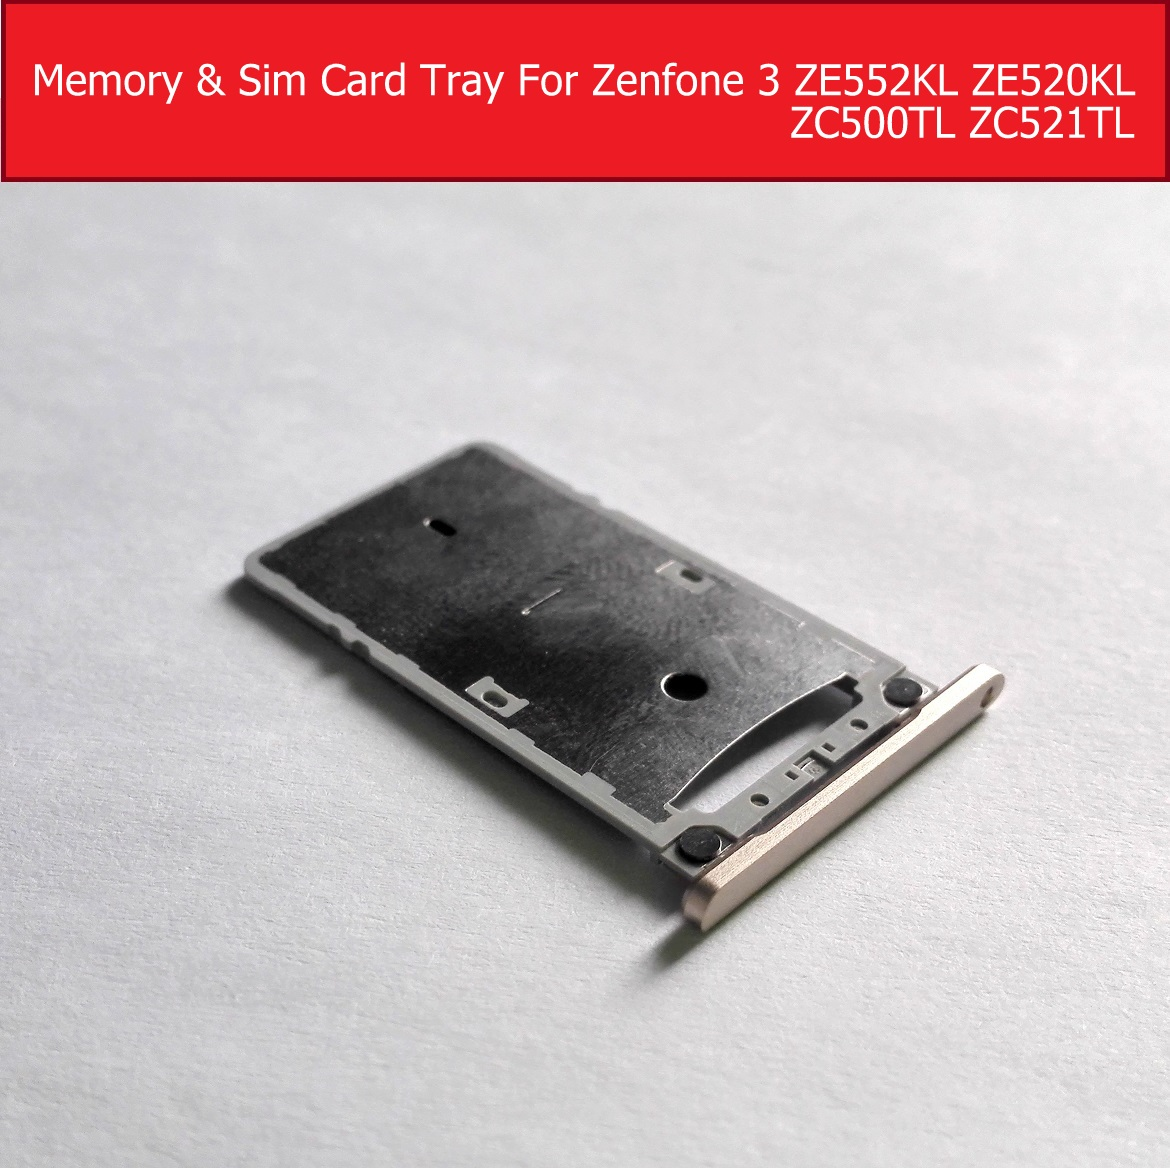 Sim Card Tray Slot For Asus Zenfone 3s MAX X00GD Zc521tl Memory Card Connector Holder For Zenfone 4 ZC500TL Sim-card Adapter